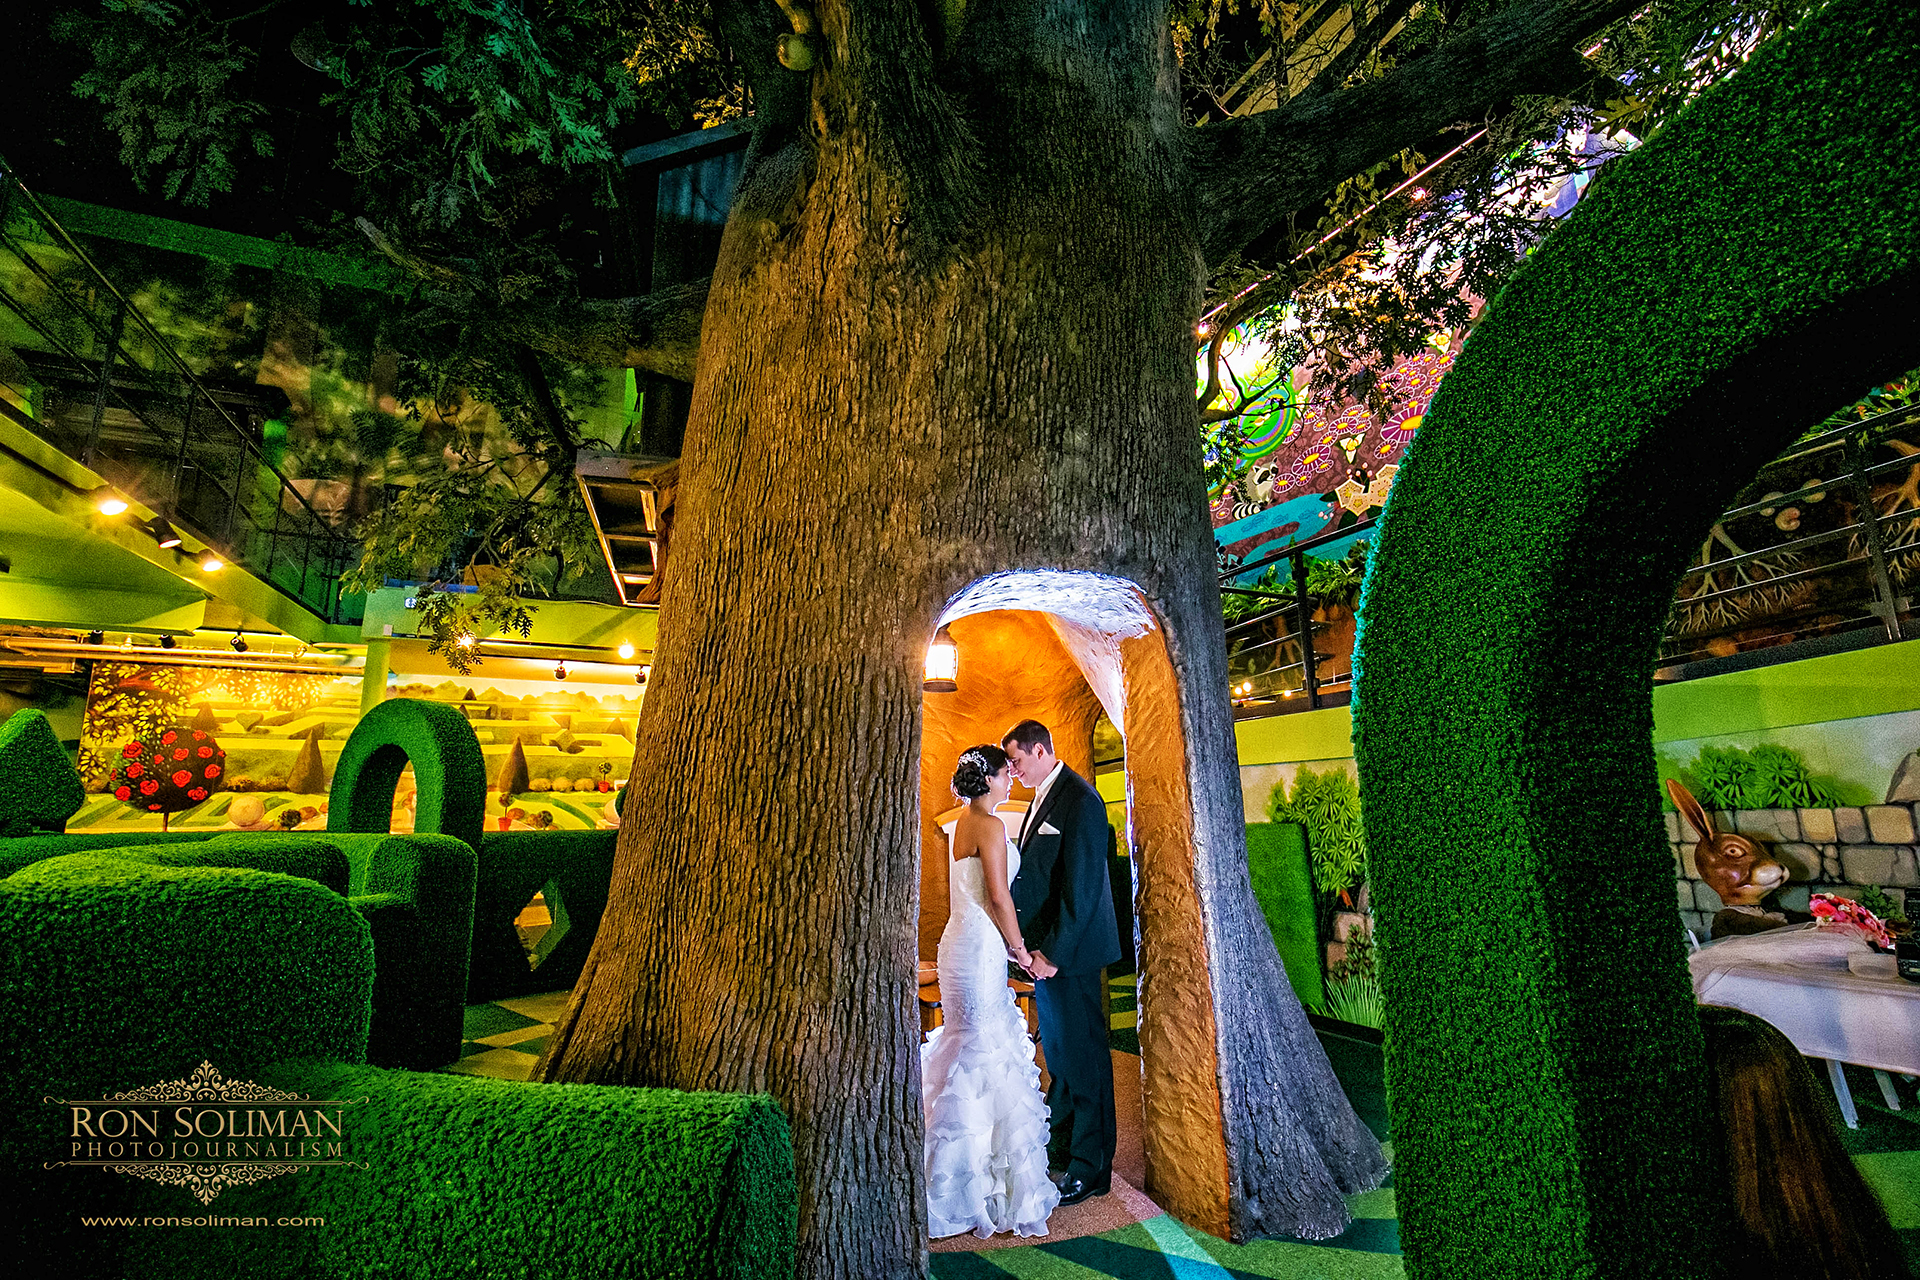 Best wedding photos at Please touch museum